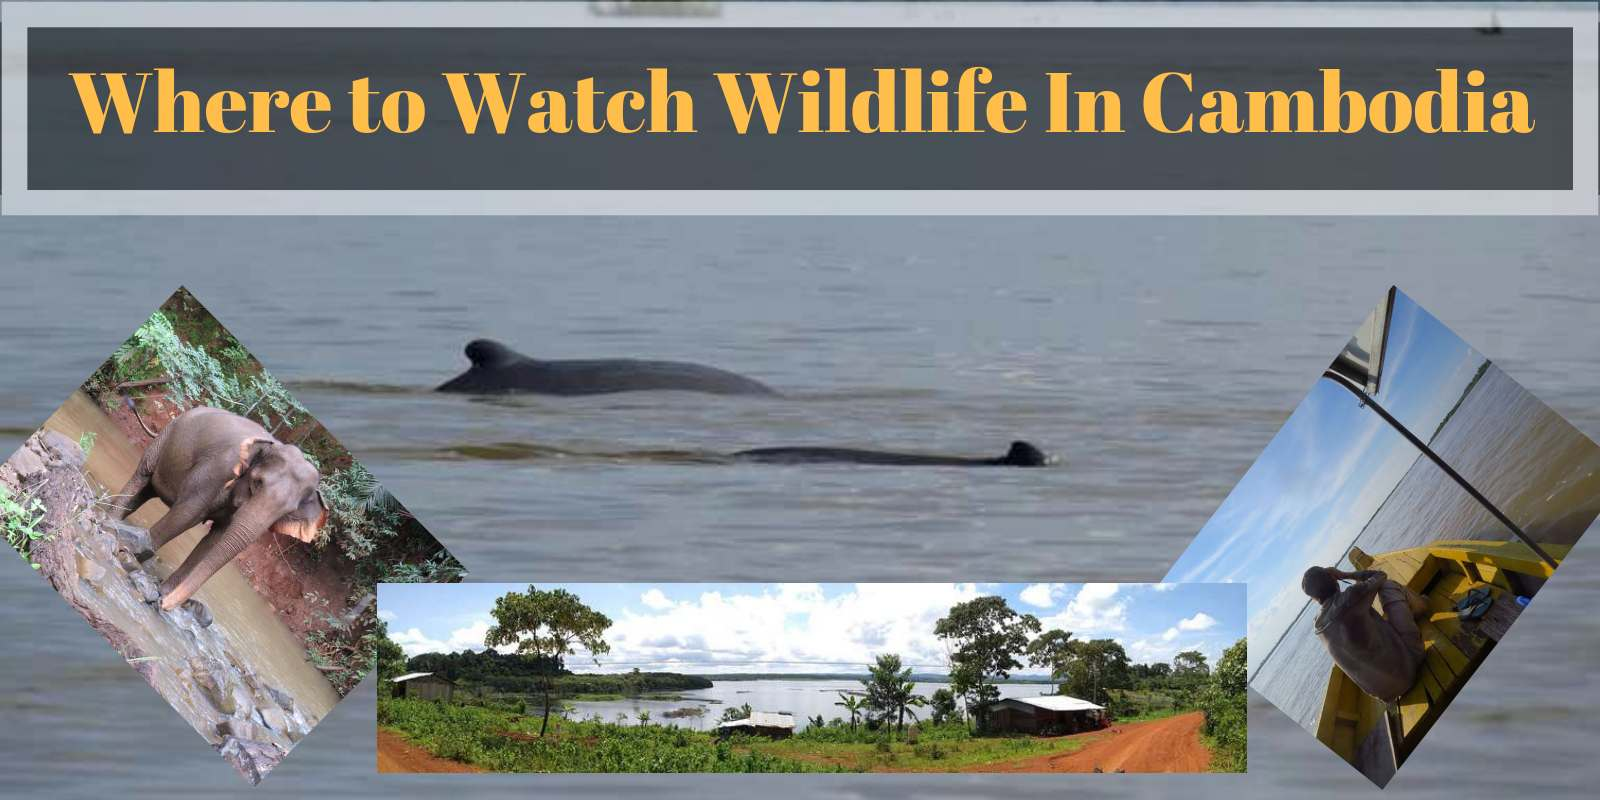 Where to watch wildlife in Cambodia